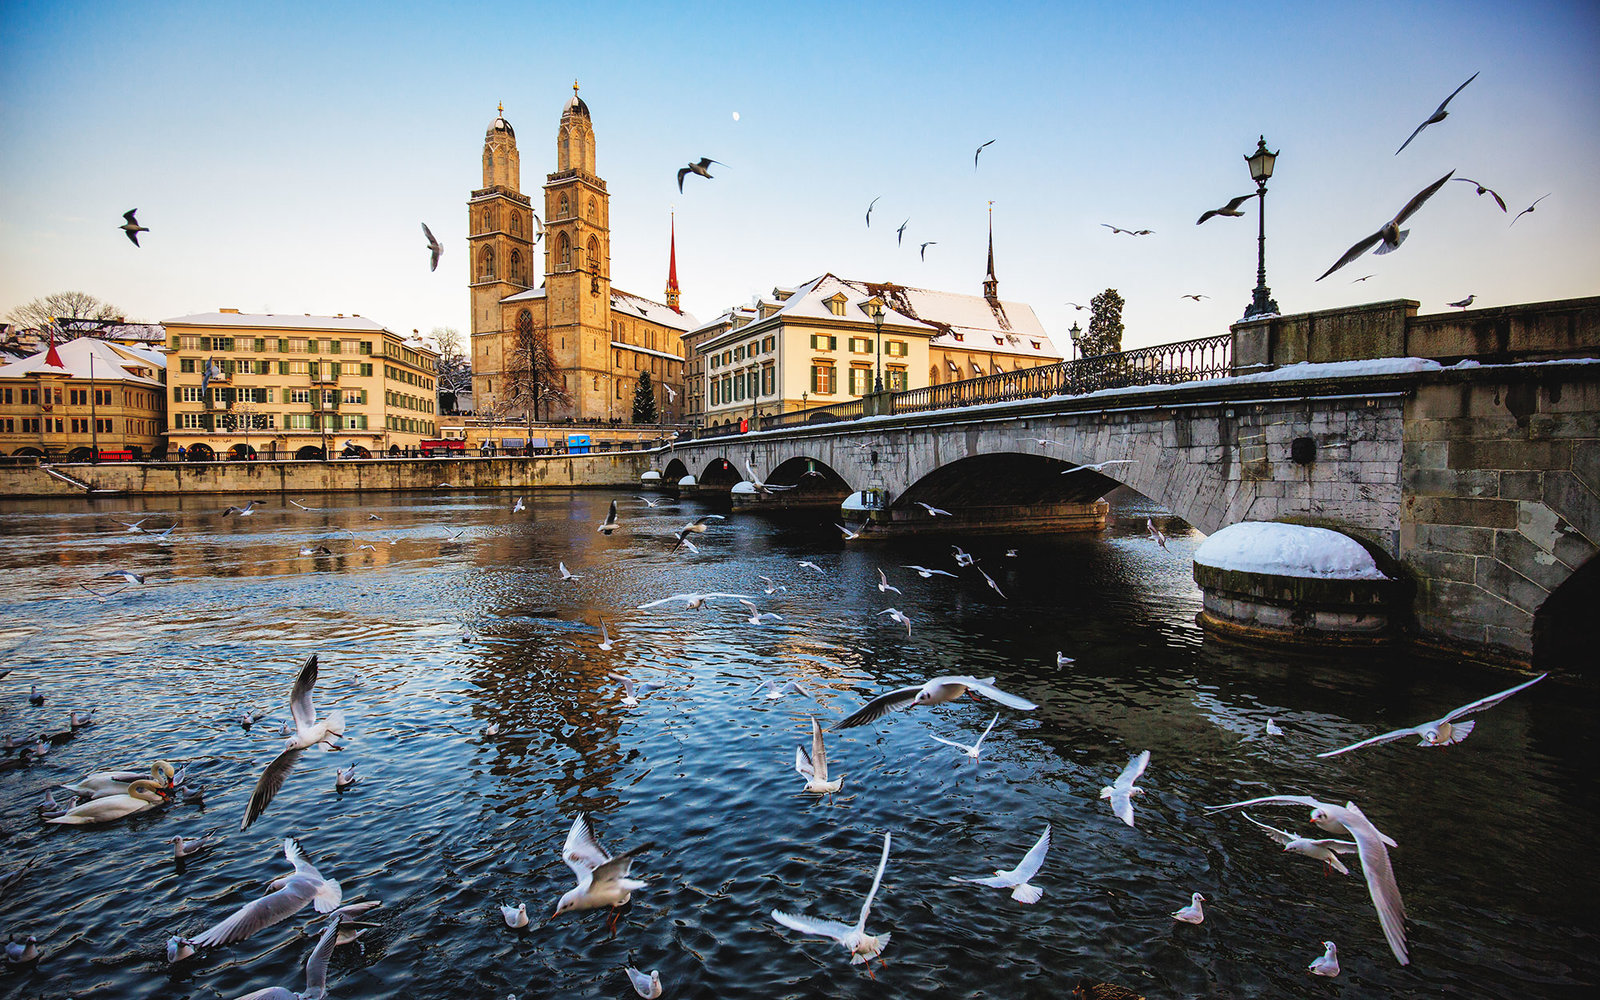 Zurich Grossmunster in Winter with Birds flying.